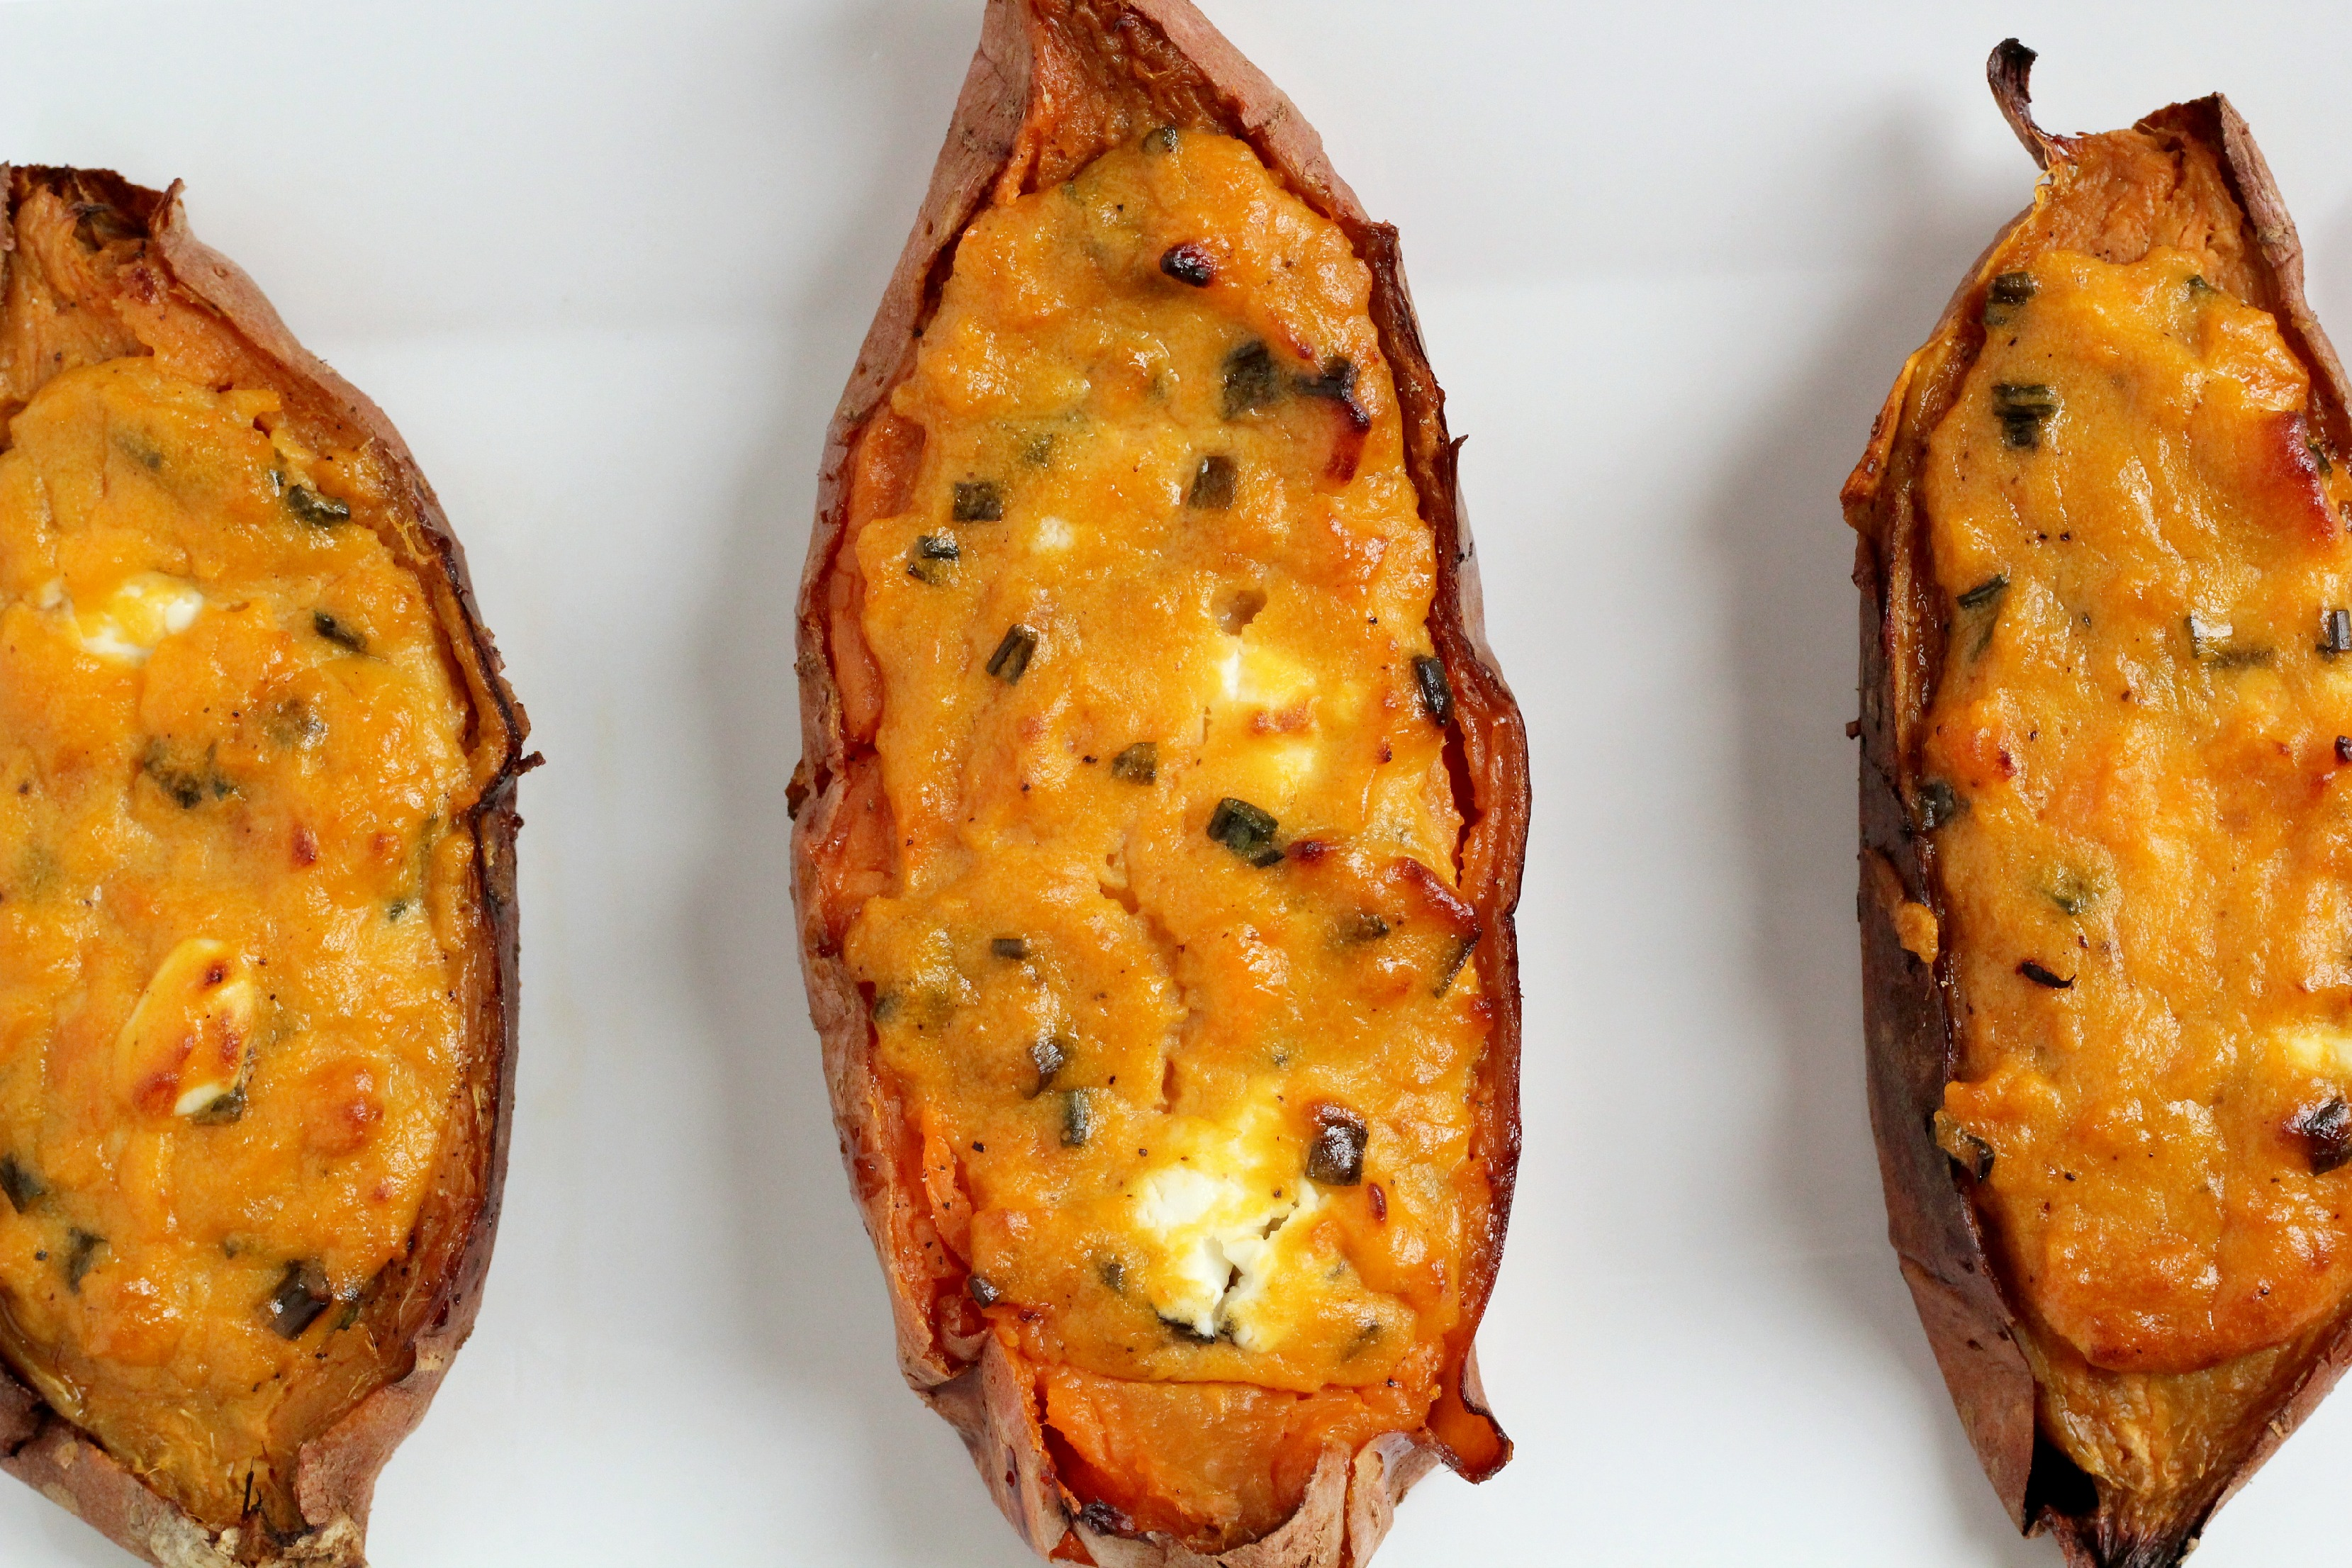 Twice baked sweet potatoes, you say? Yes! And this recipe is so good.